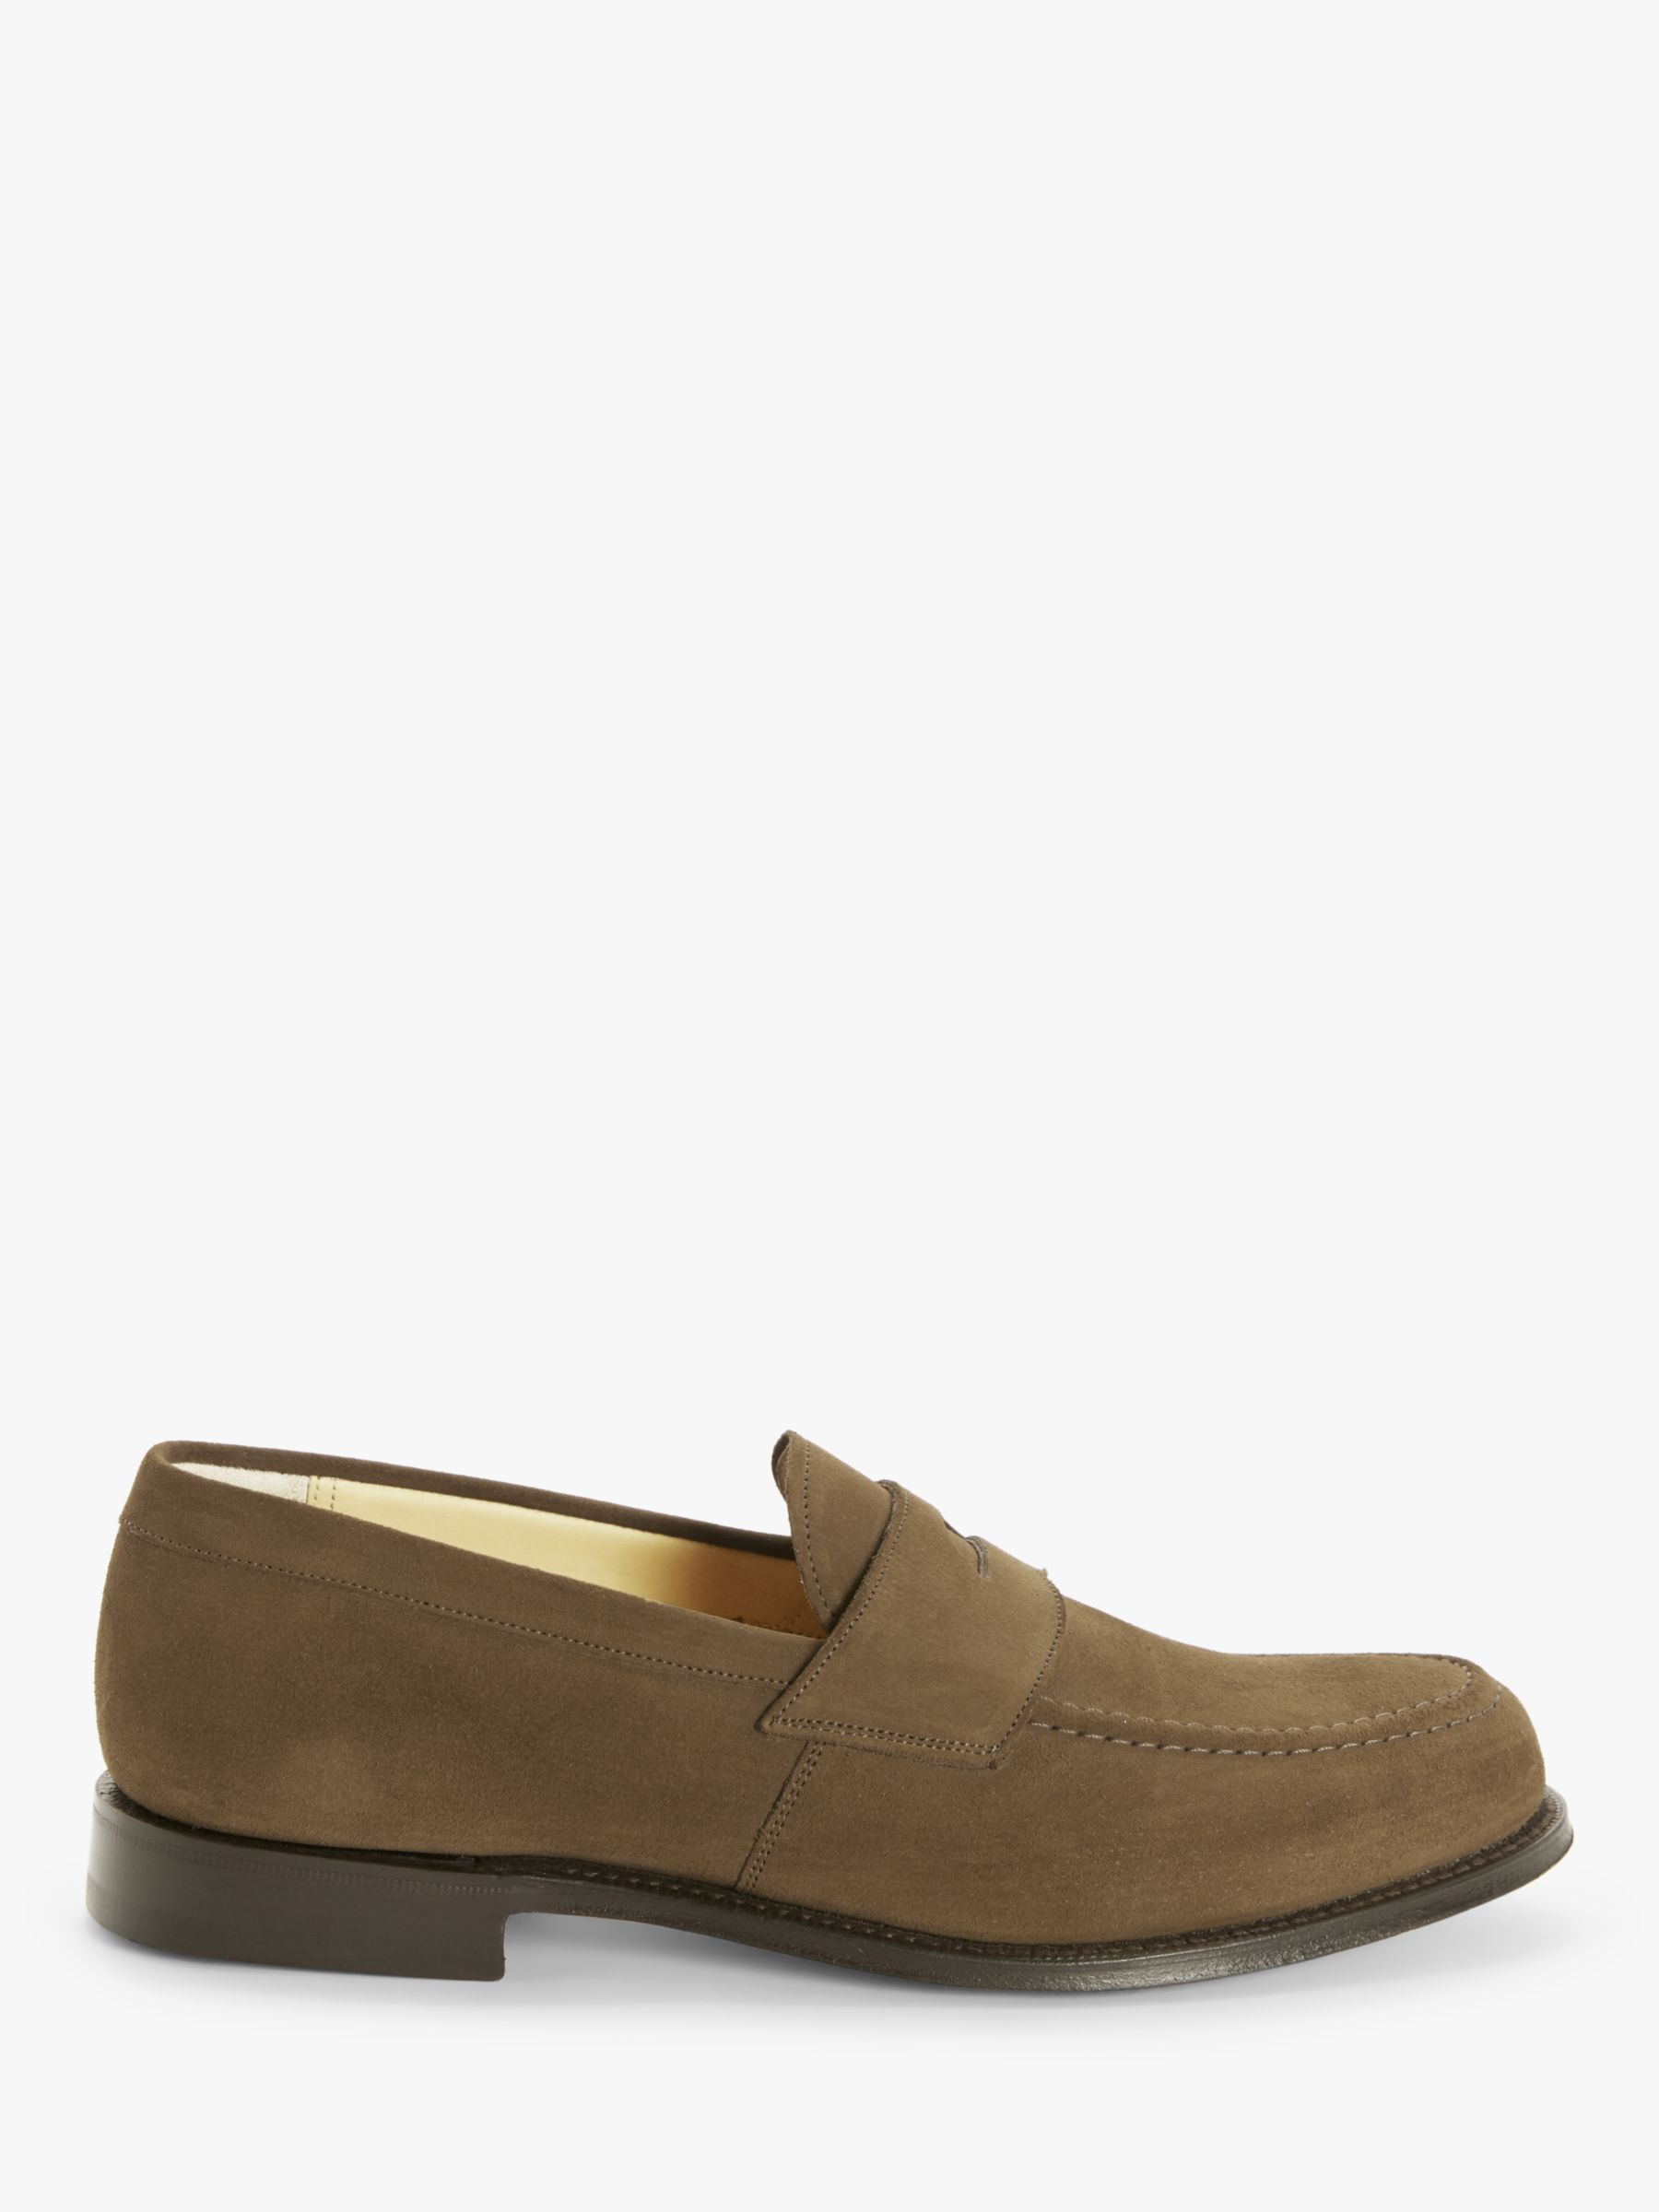 Church's Church's Dawley Leather Loafers, Tobacco